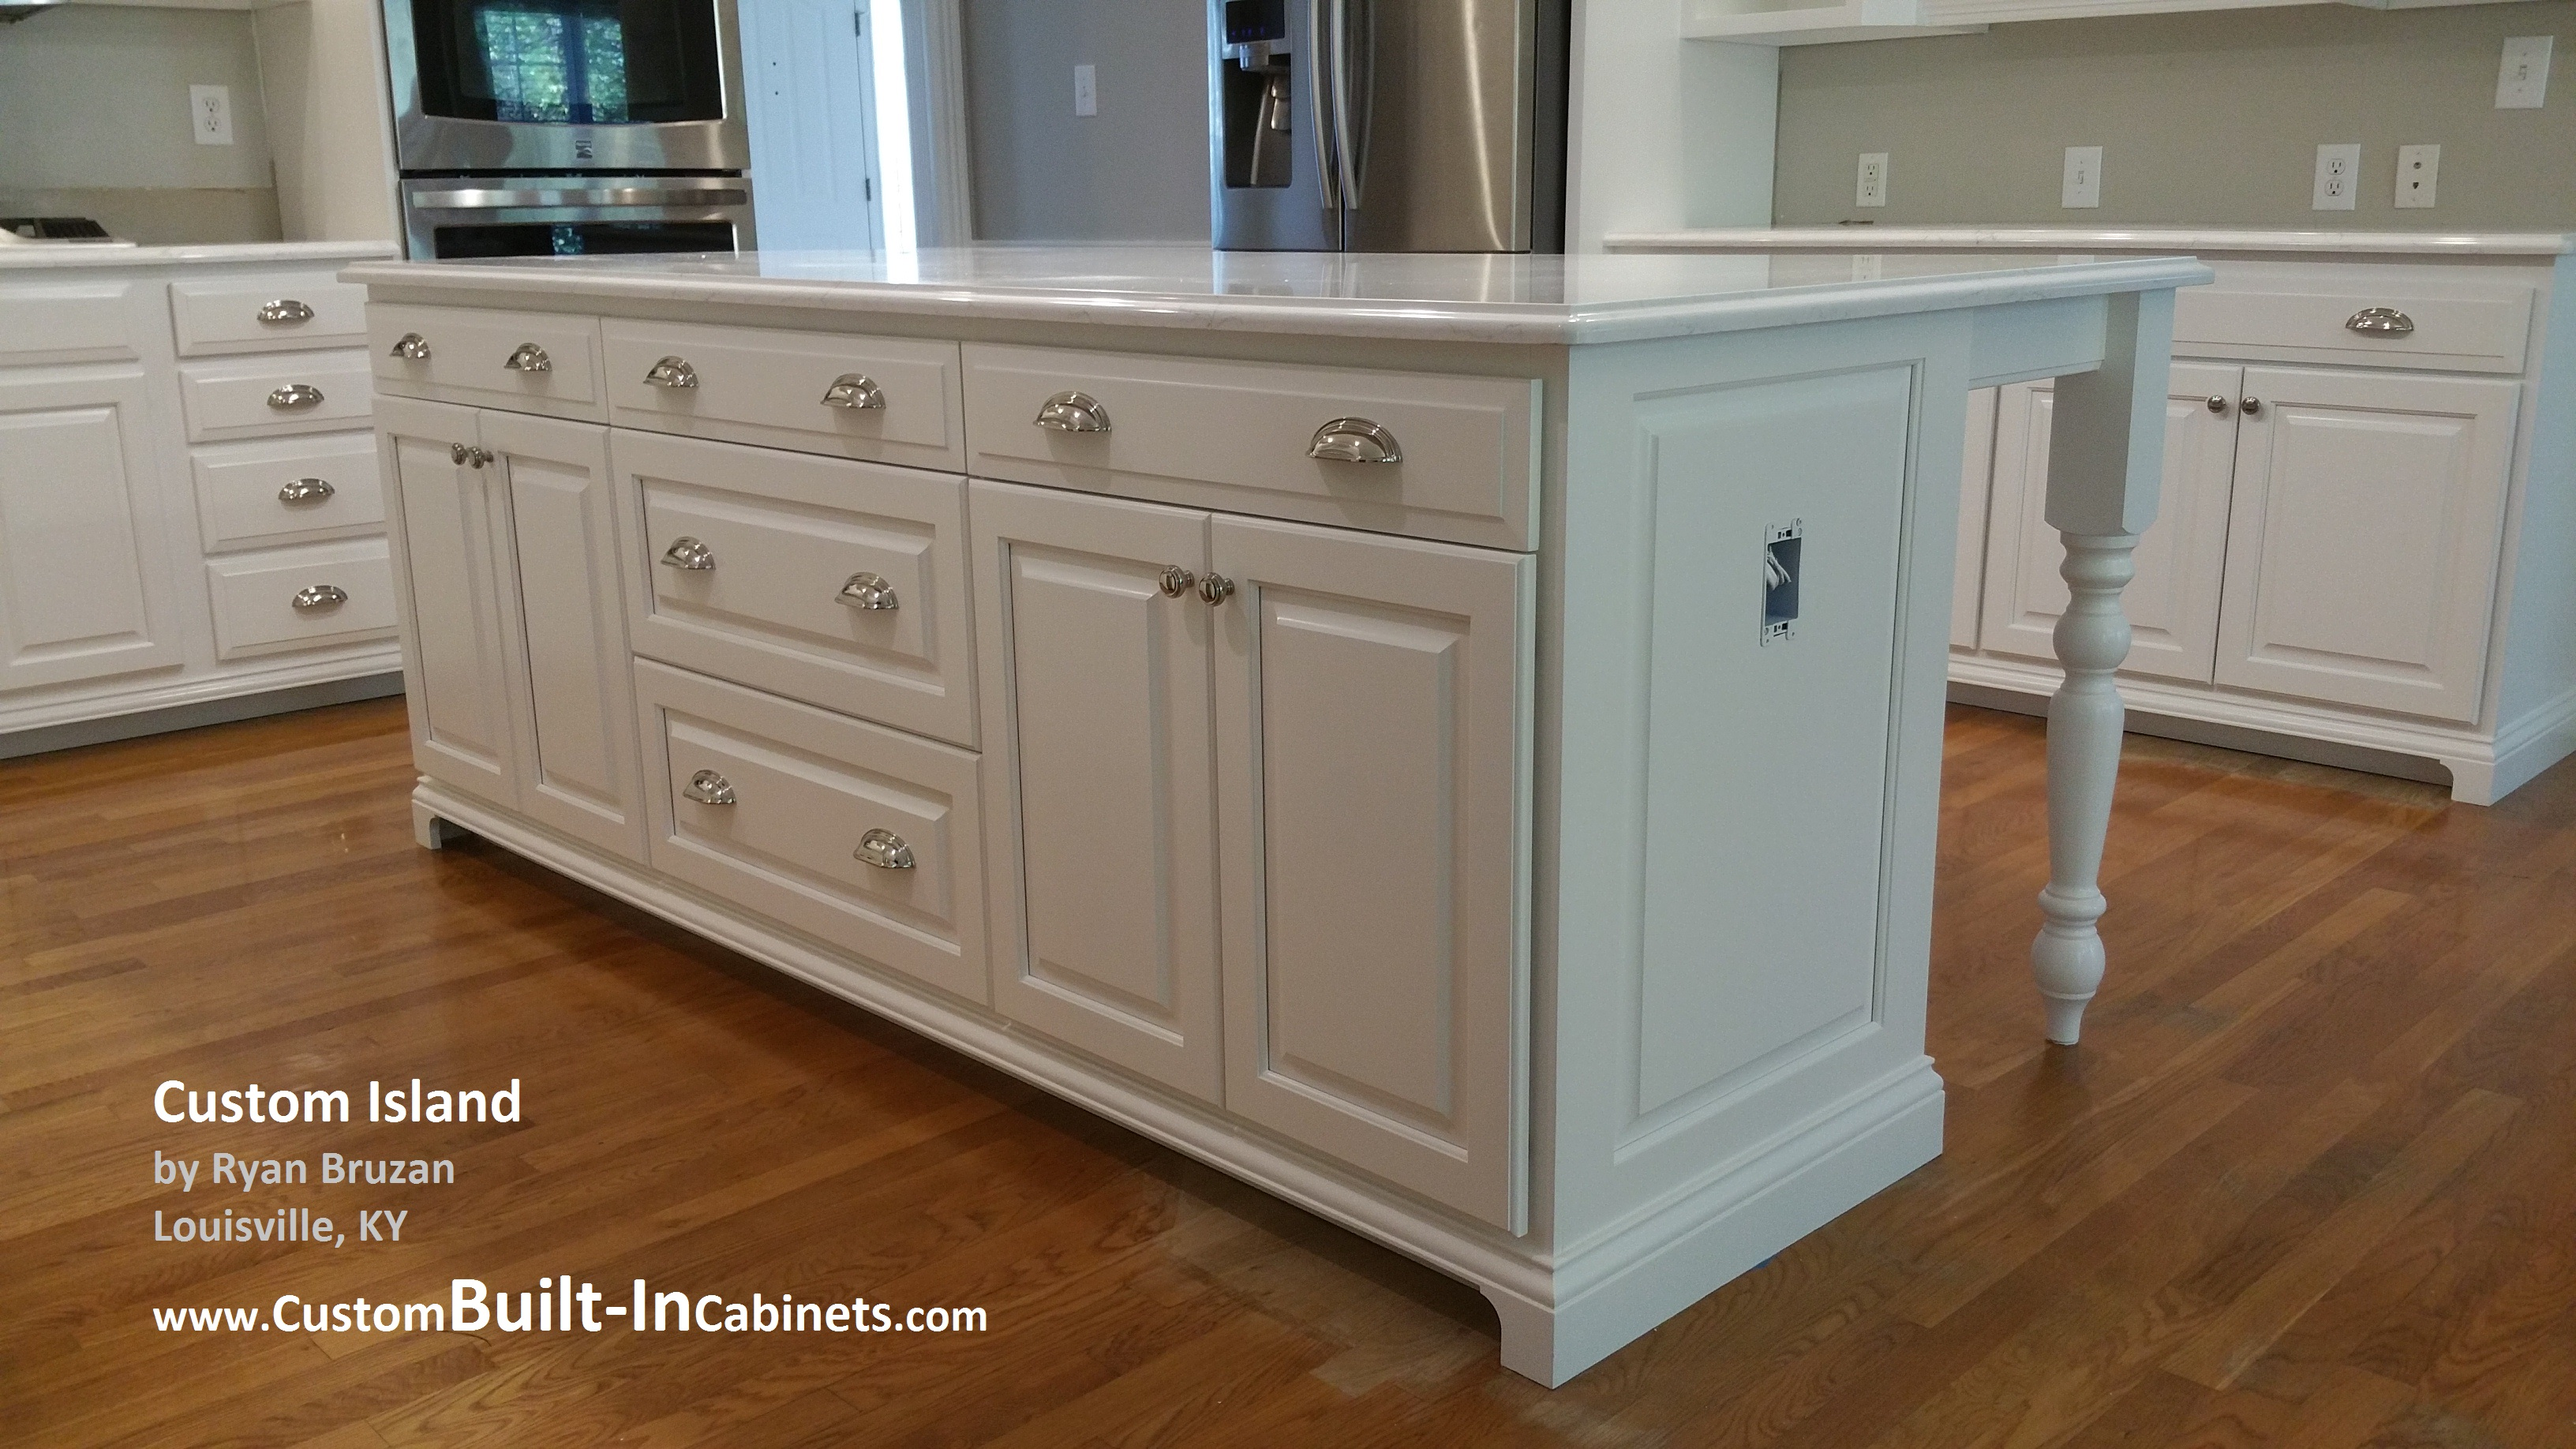 Custom built in cabinet services around louisville ky for Built in kitchen cabinets